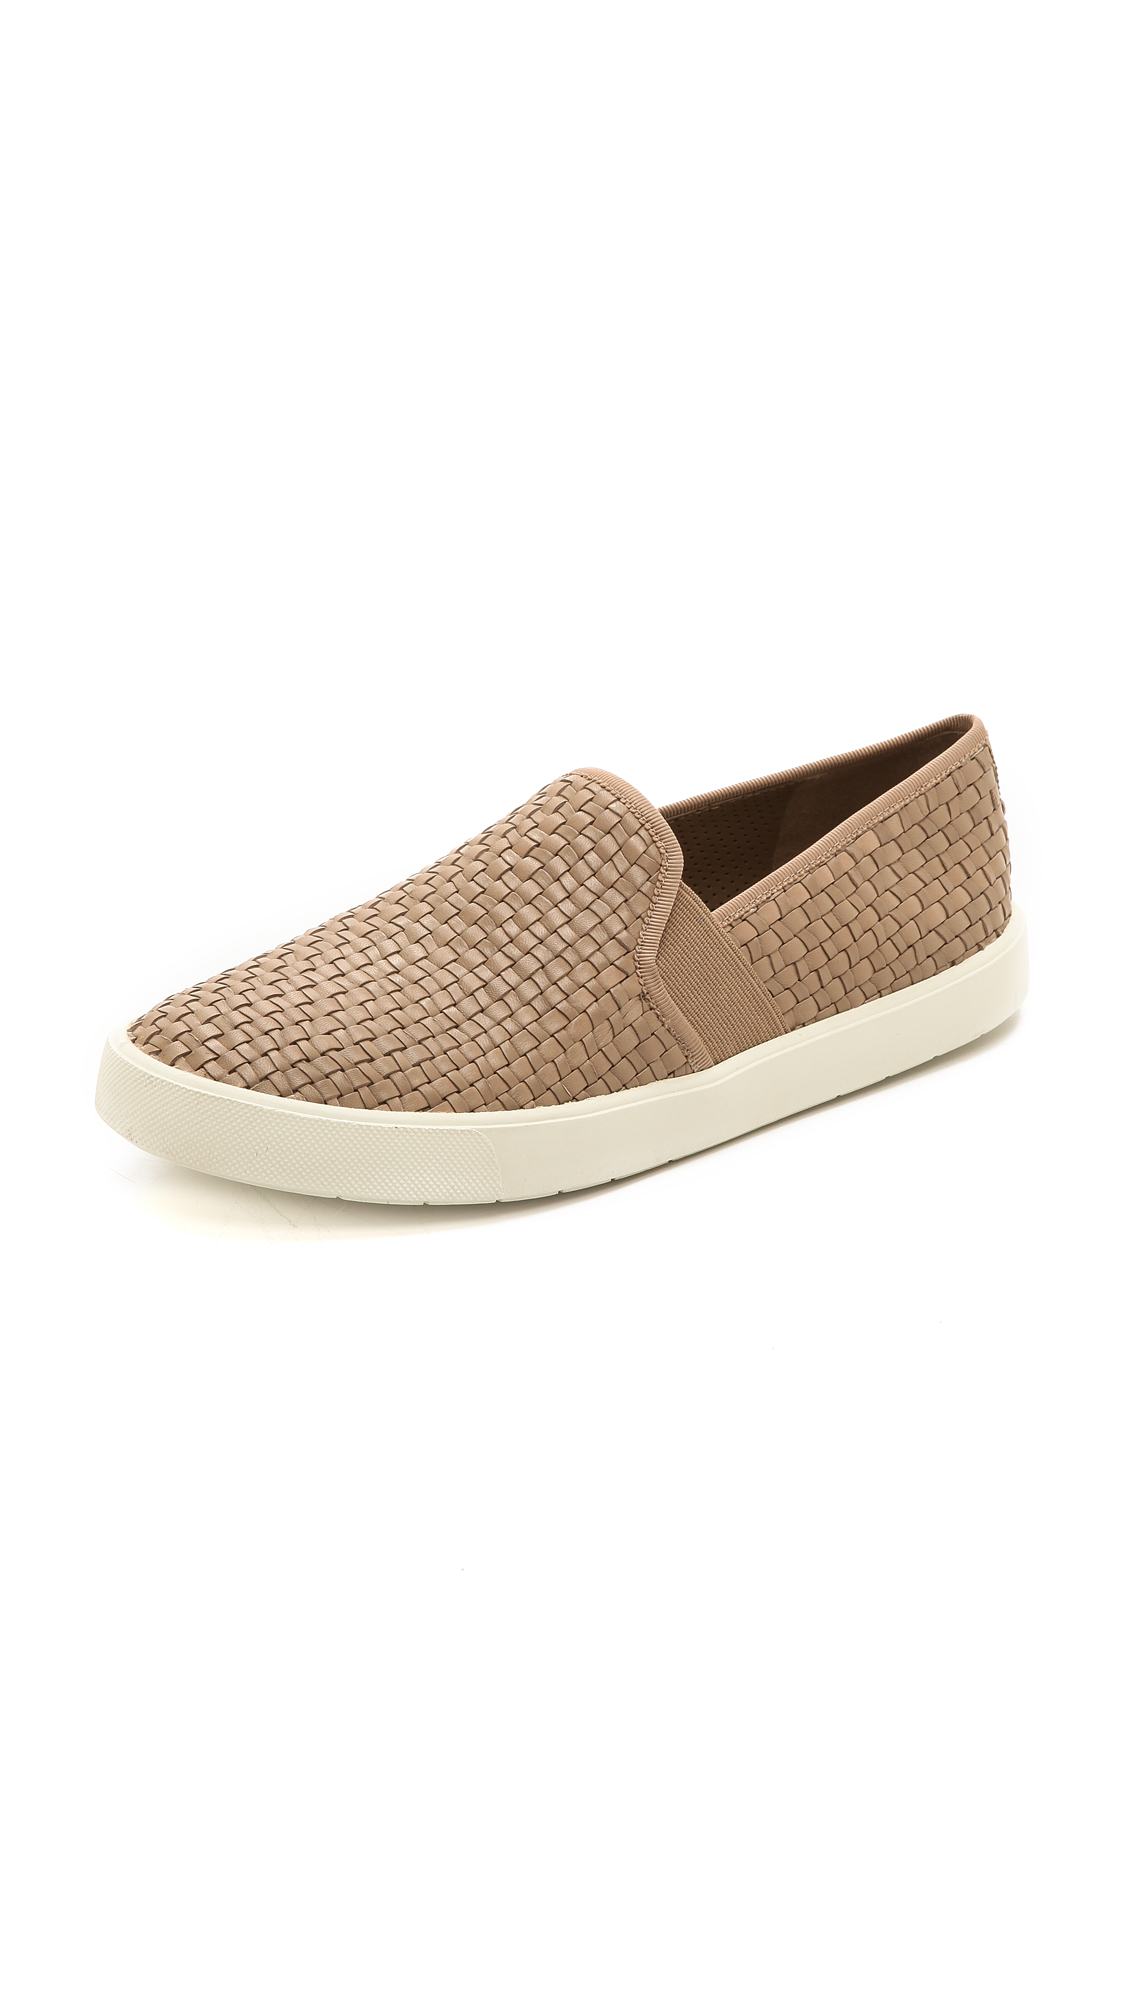 Vince Berlin Calf Hair Slip-On Sneaker, Twilight, Taupe